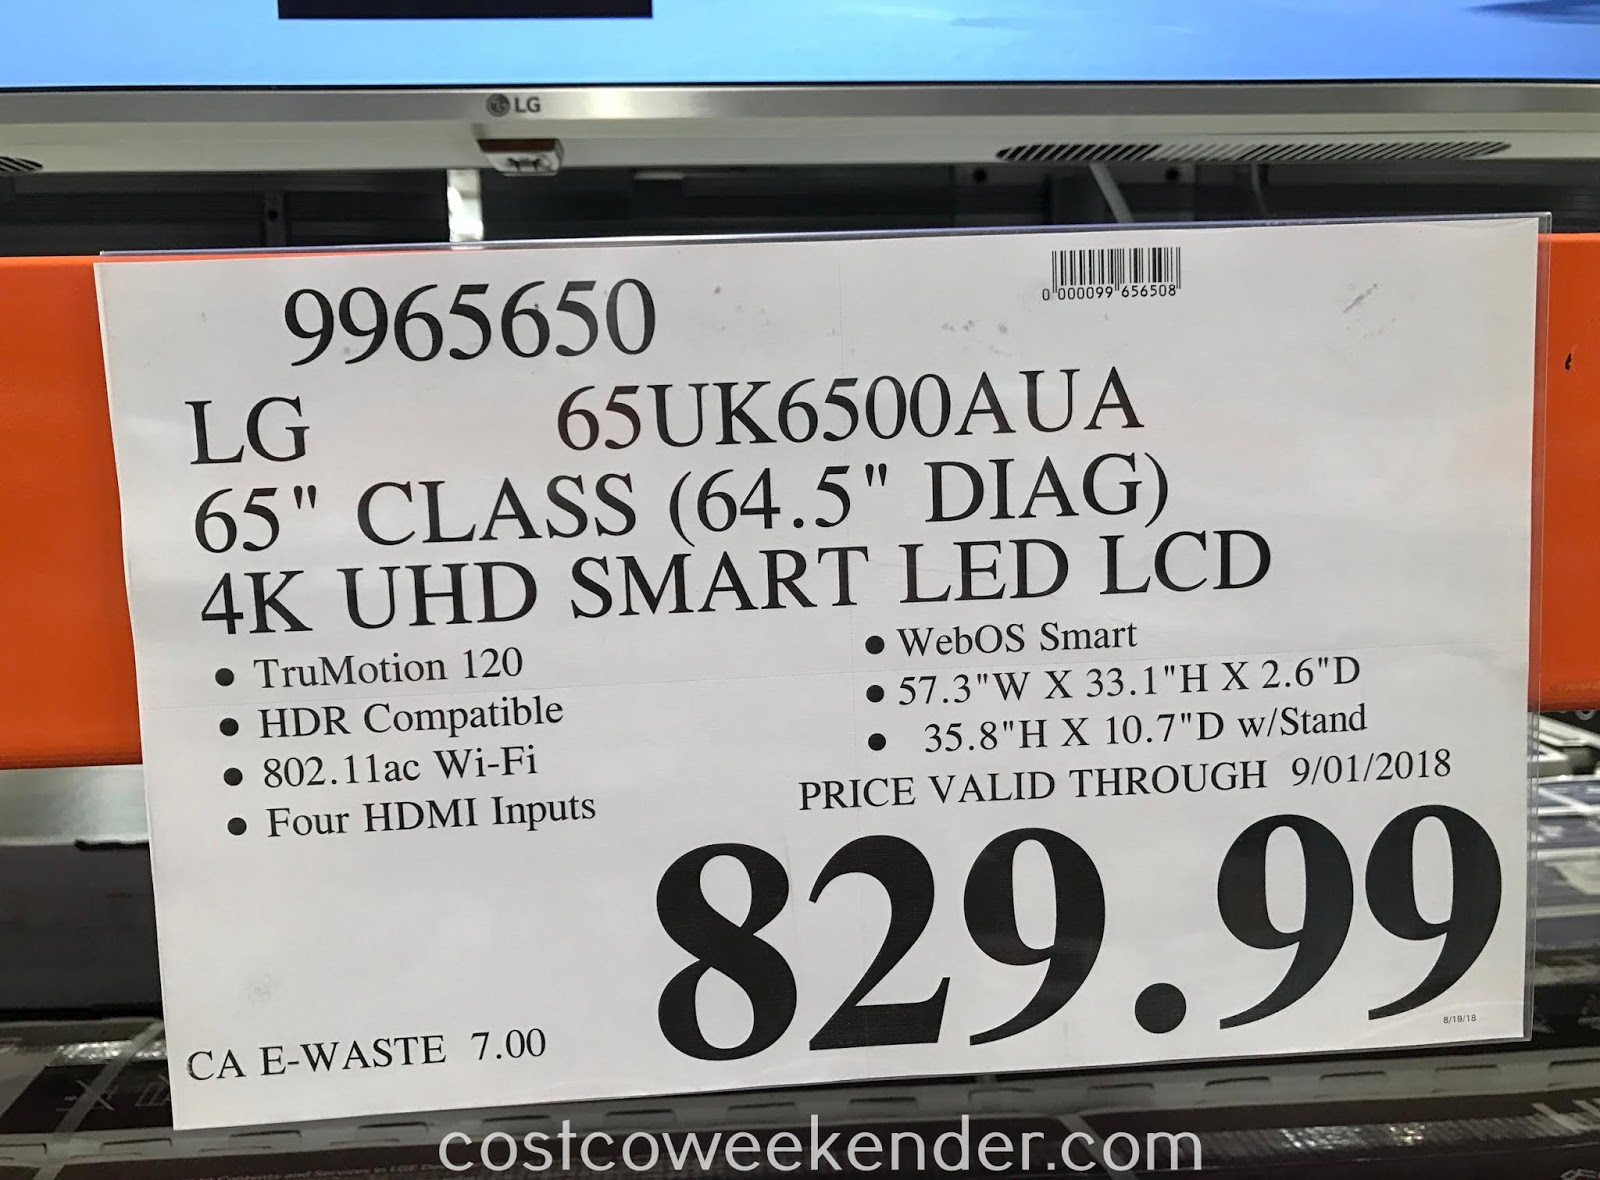 Deal for the LG 65UK6500AUA 65in 4K UHD TV at Costco